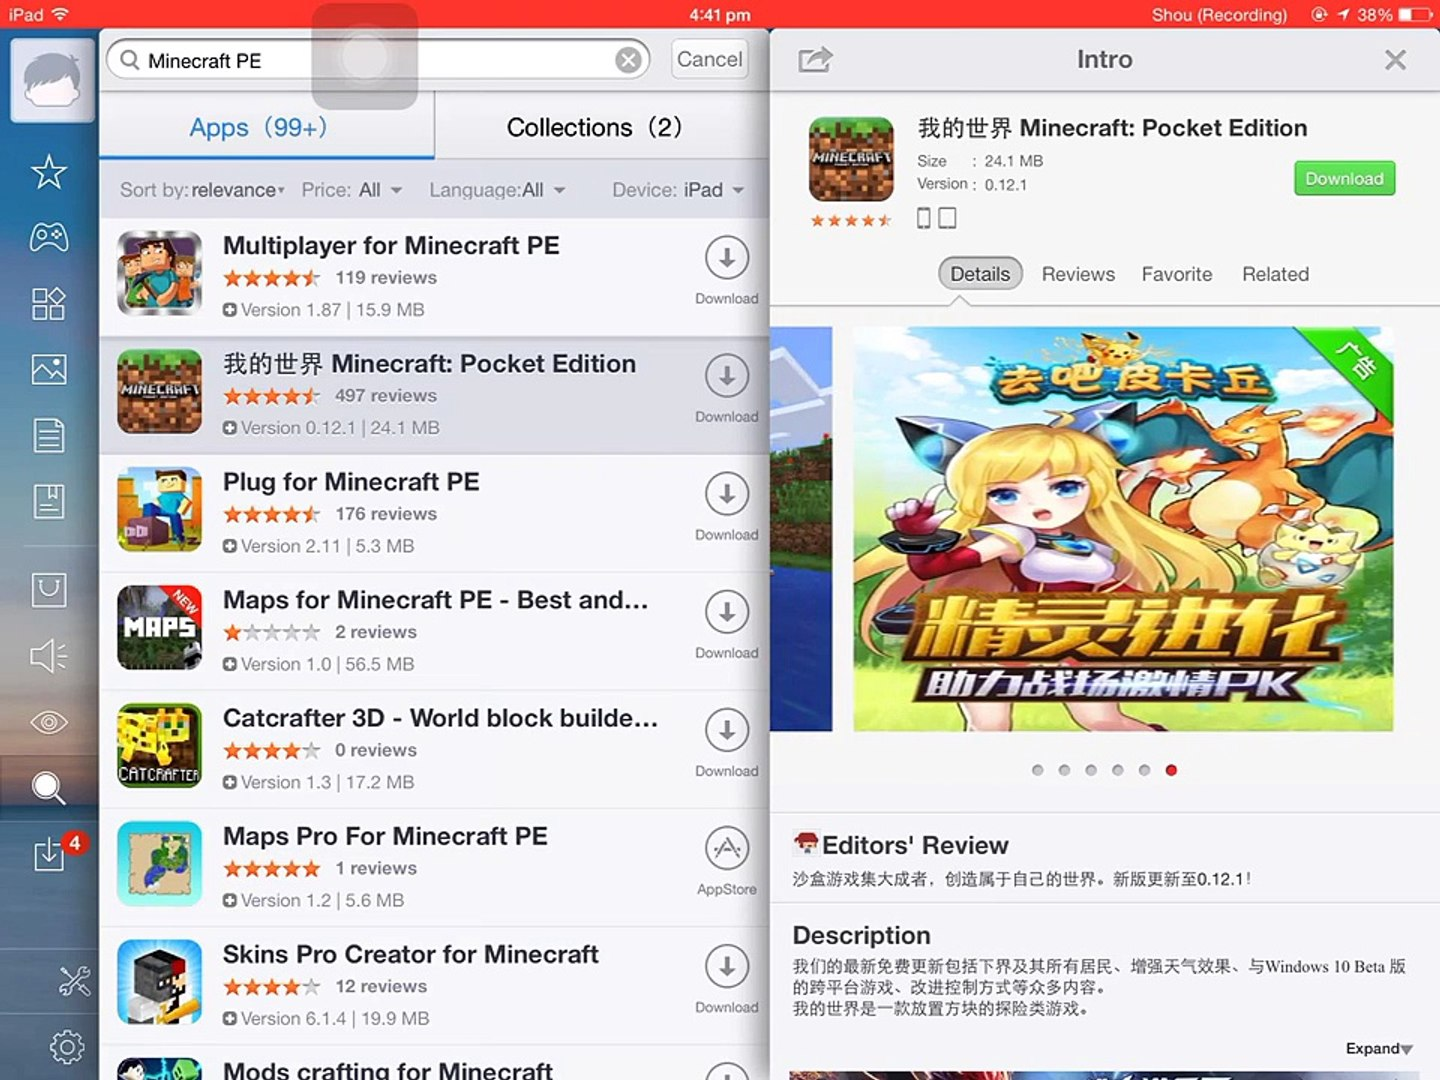 How to get Minecraft PE 0 12 1 for free IOS (No Jailbreak/Computer)